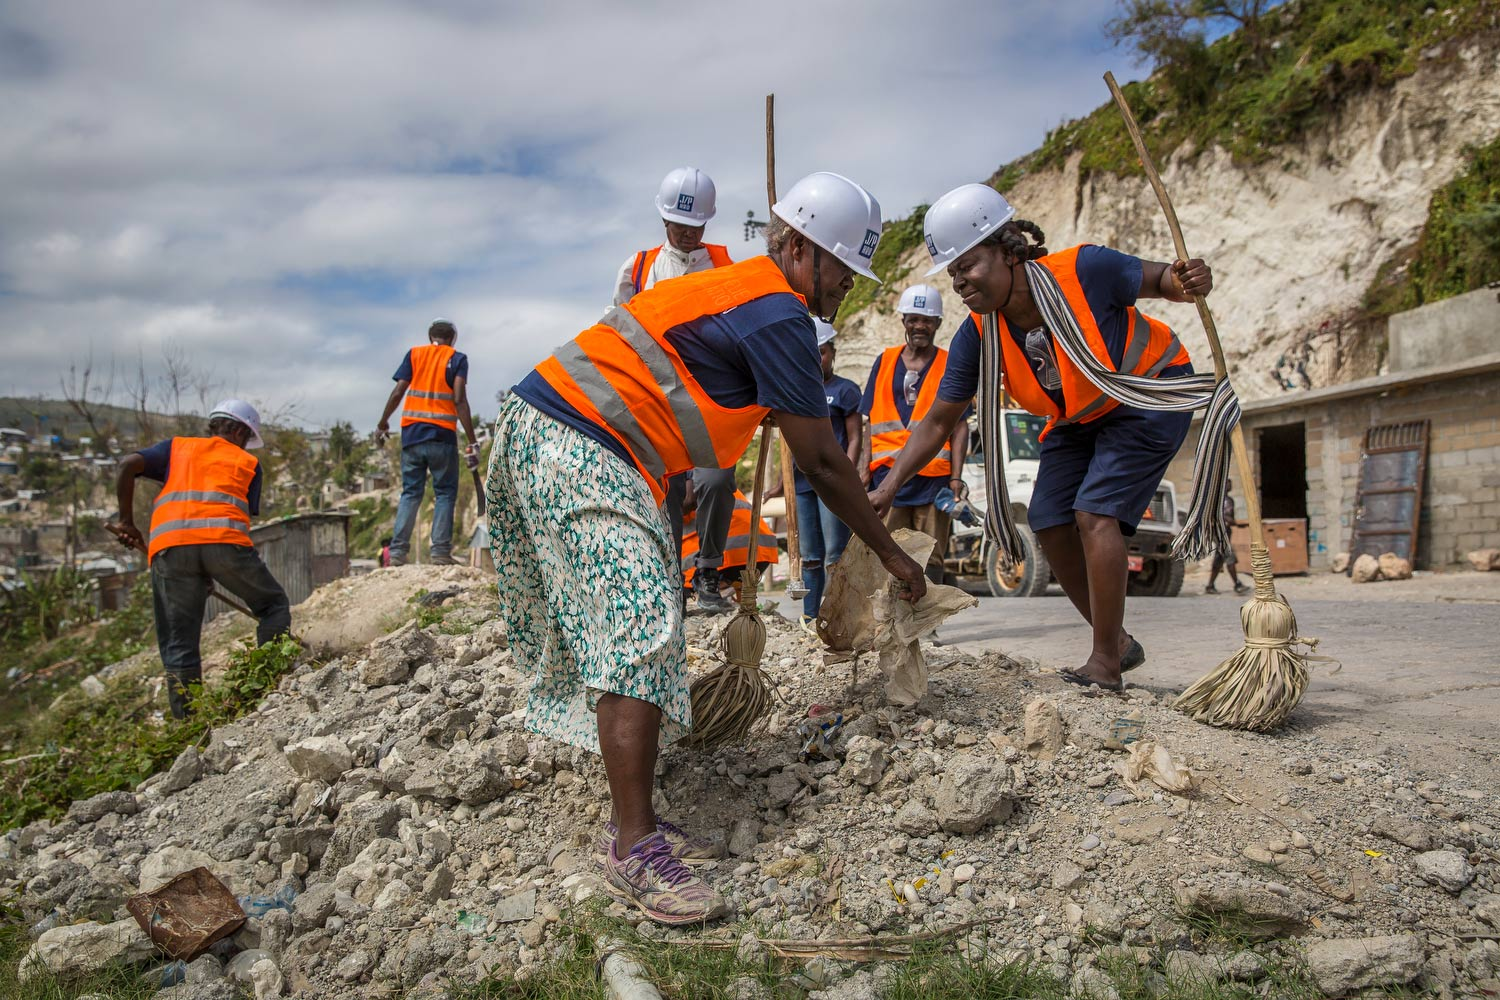 Over 600,000 cubic meters of earthquake rubble removed -